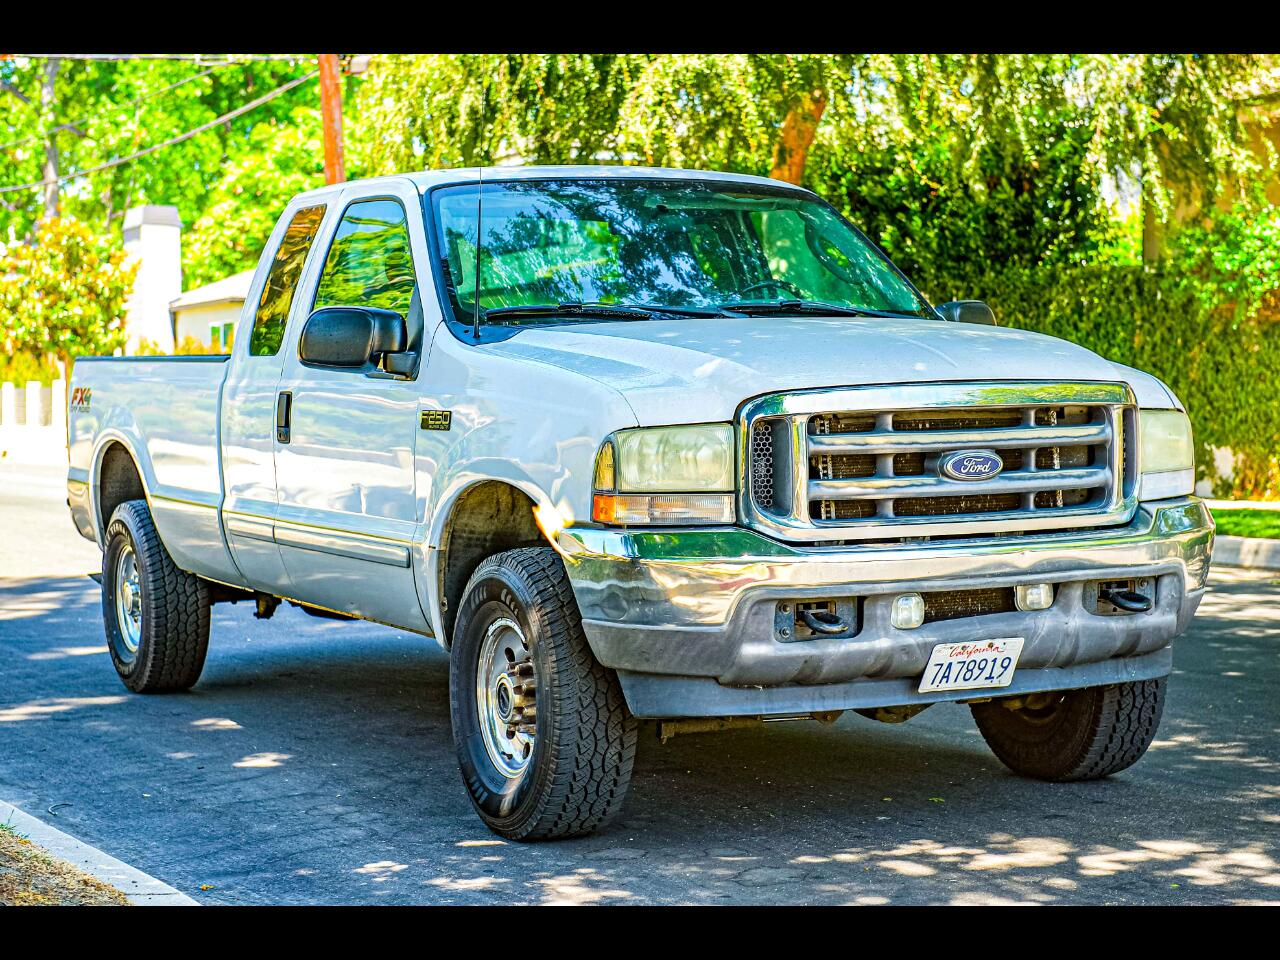 Ford F-250 SD FX4 Crew Cab Long Bed 4WD 2003